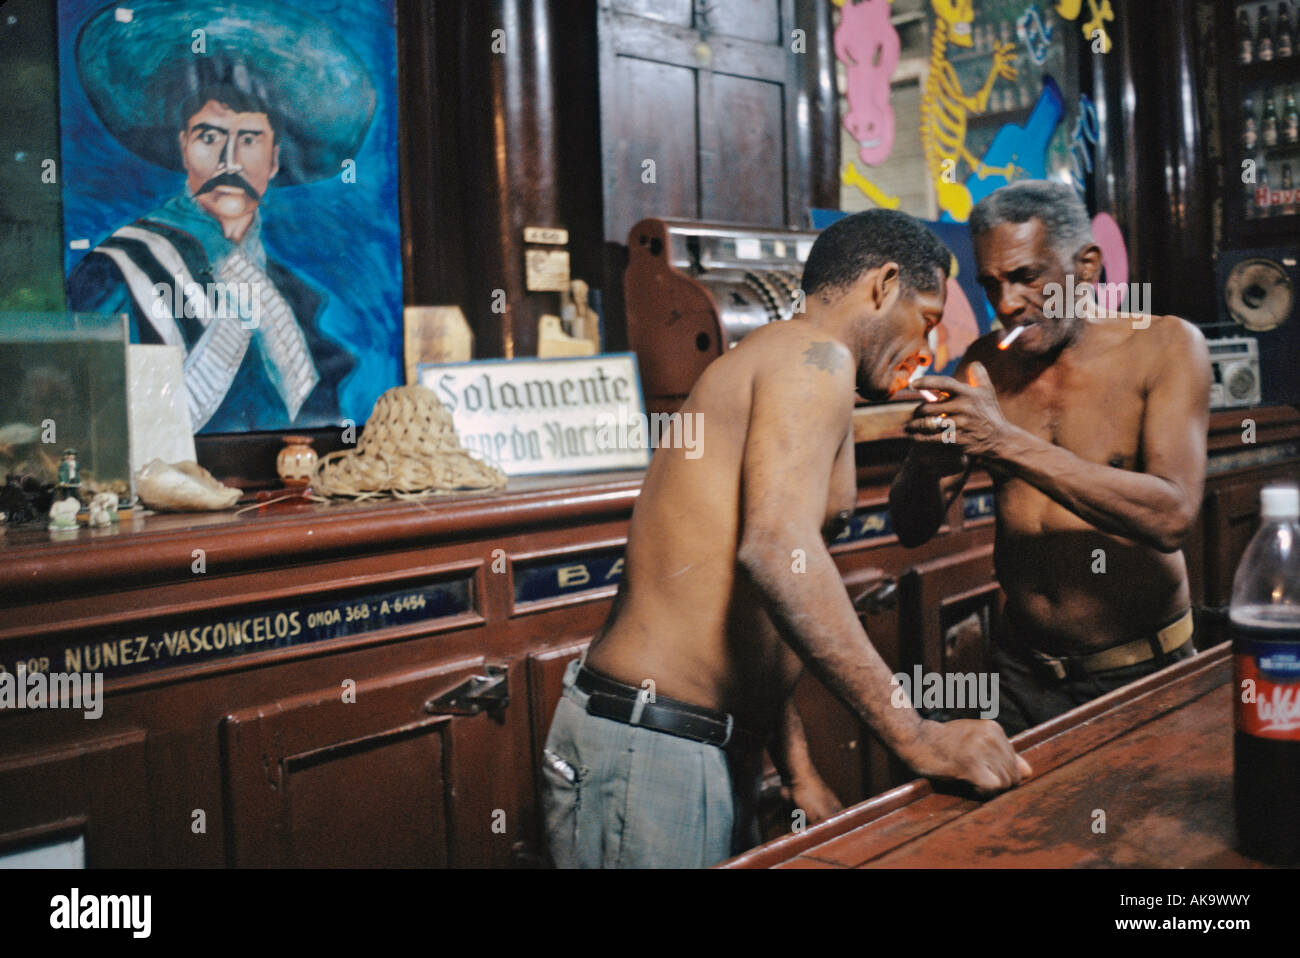 Men take a cigarette break from cleaning up in a bar. Havana Cuba - Stock Image